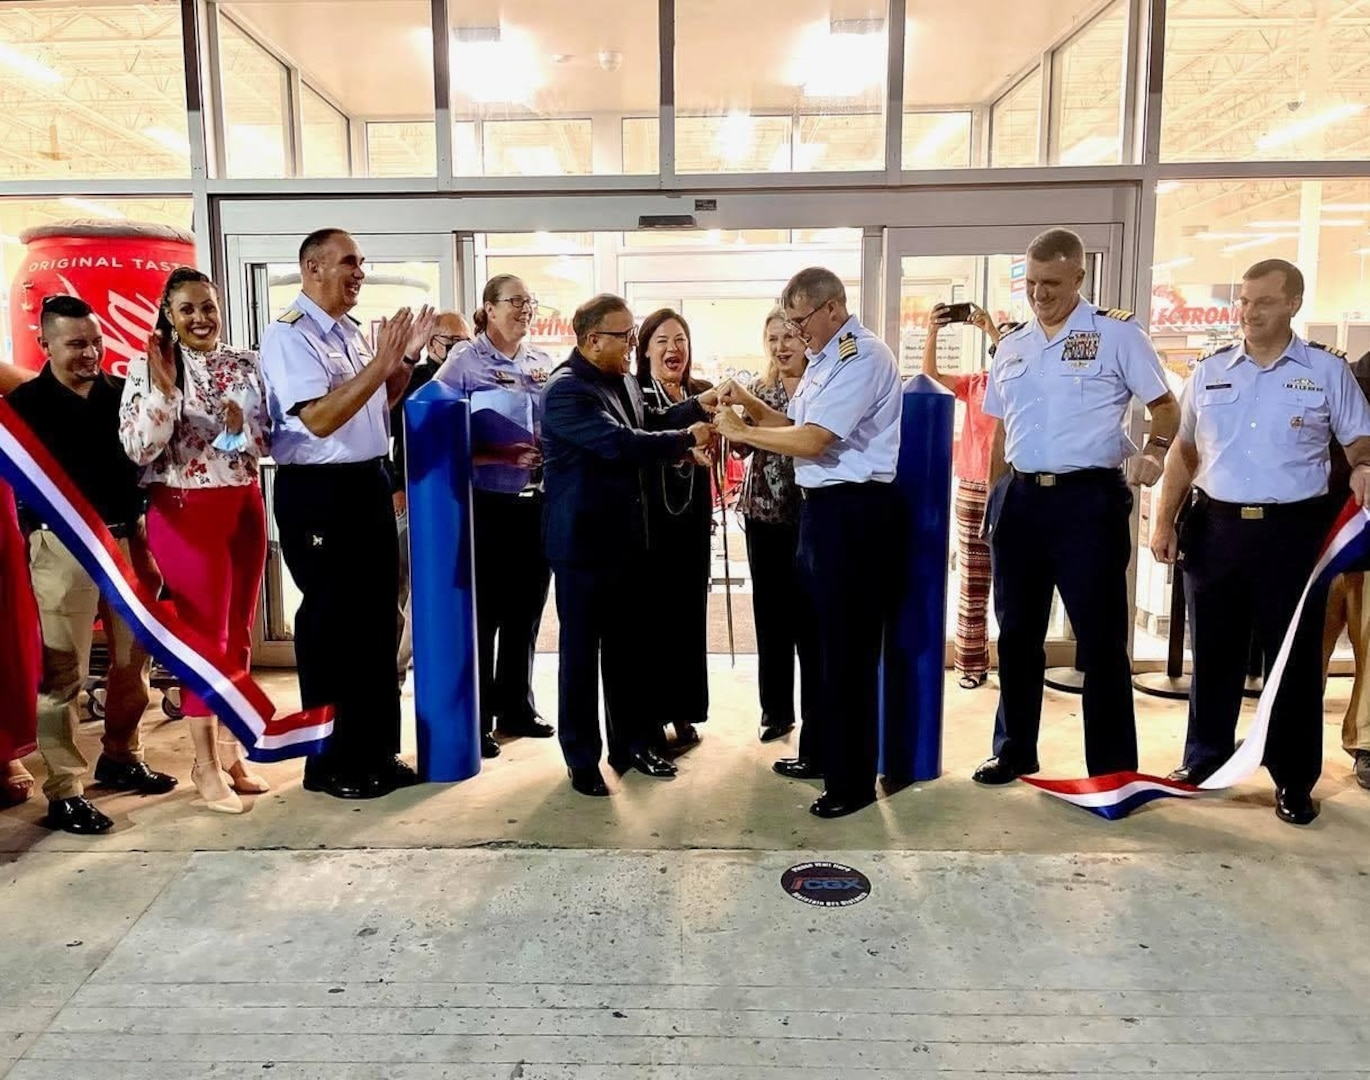 The ribbon is cut in front of the new Coast Guard Exchange in San Juan, Puerto Rico, Sept. 14, 2021. U.S. Coast Guard photo